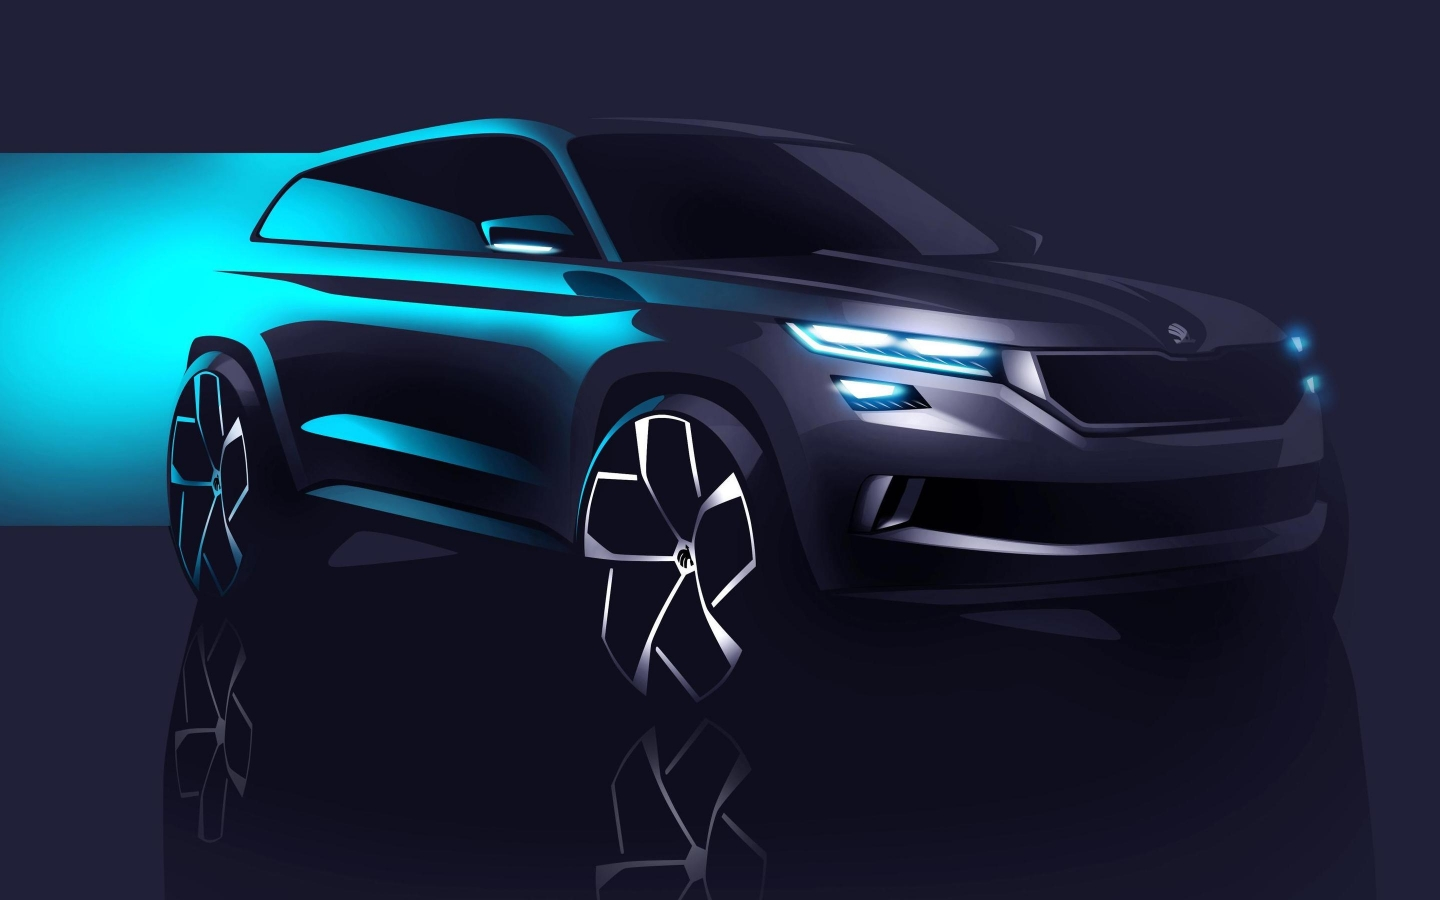 2016 Skoda Visions Concept for 1440 x 900 widescreen resolution